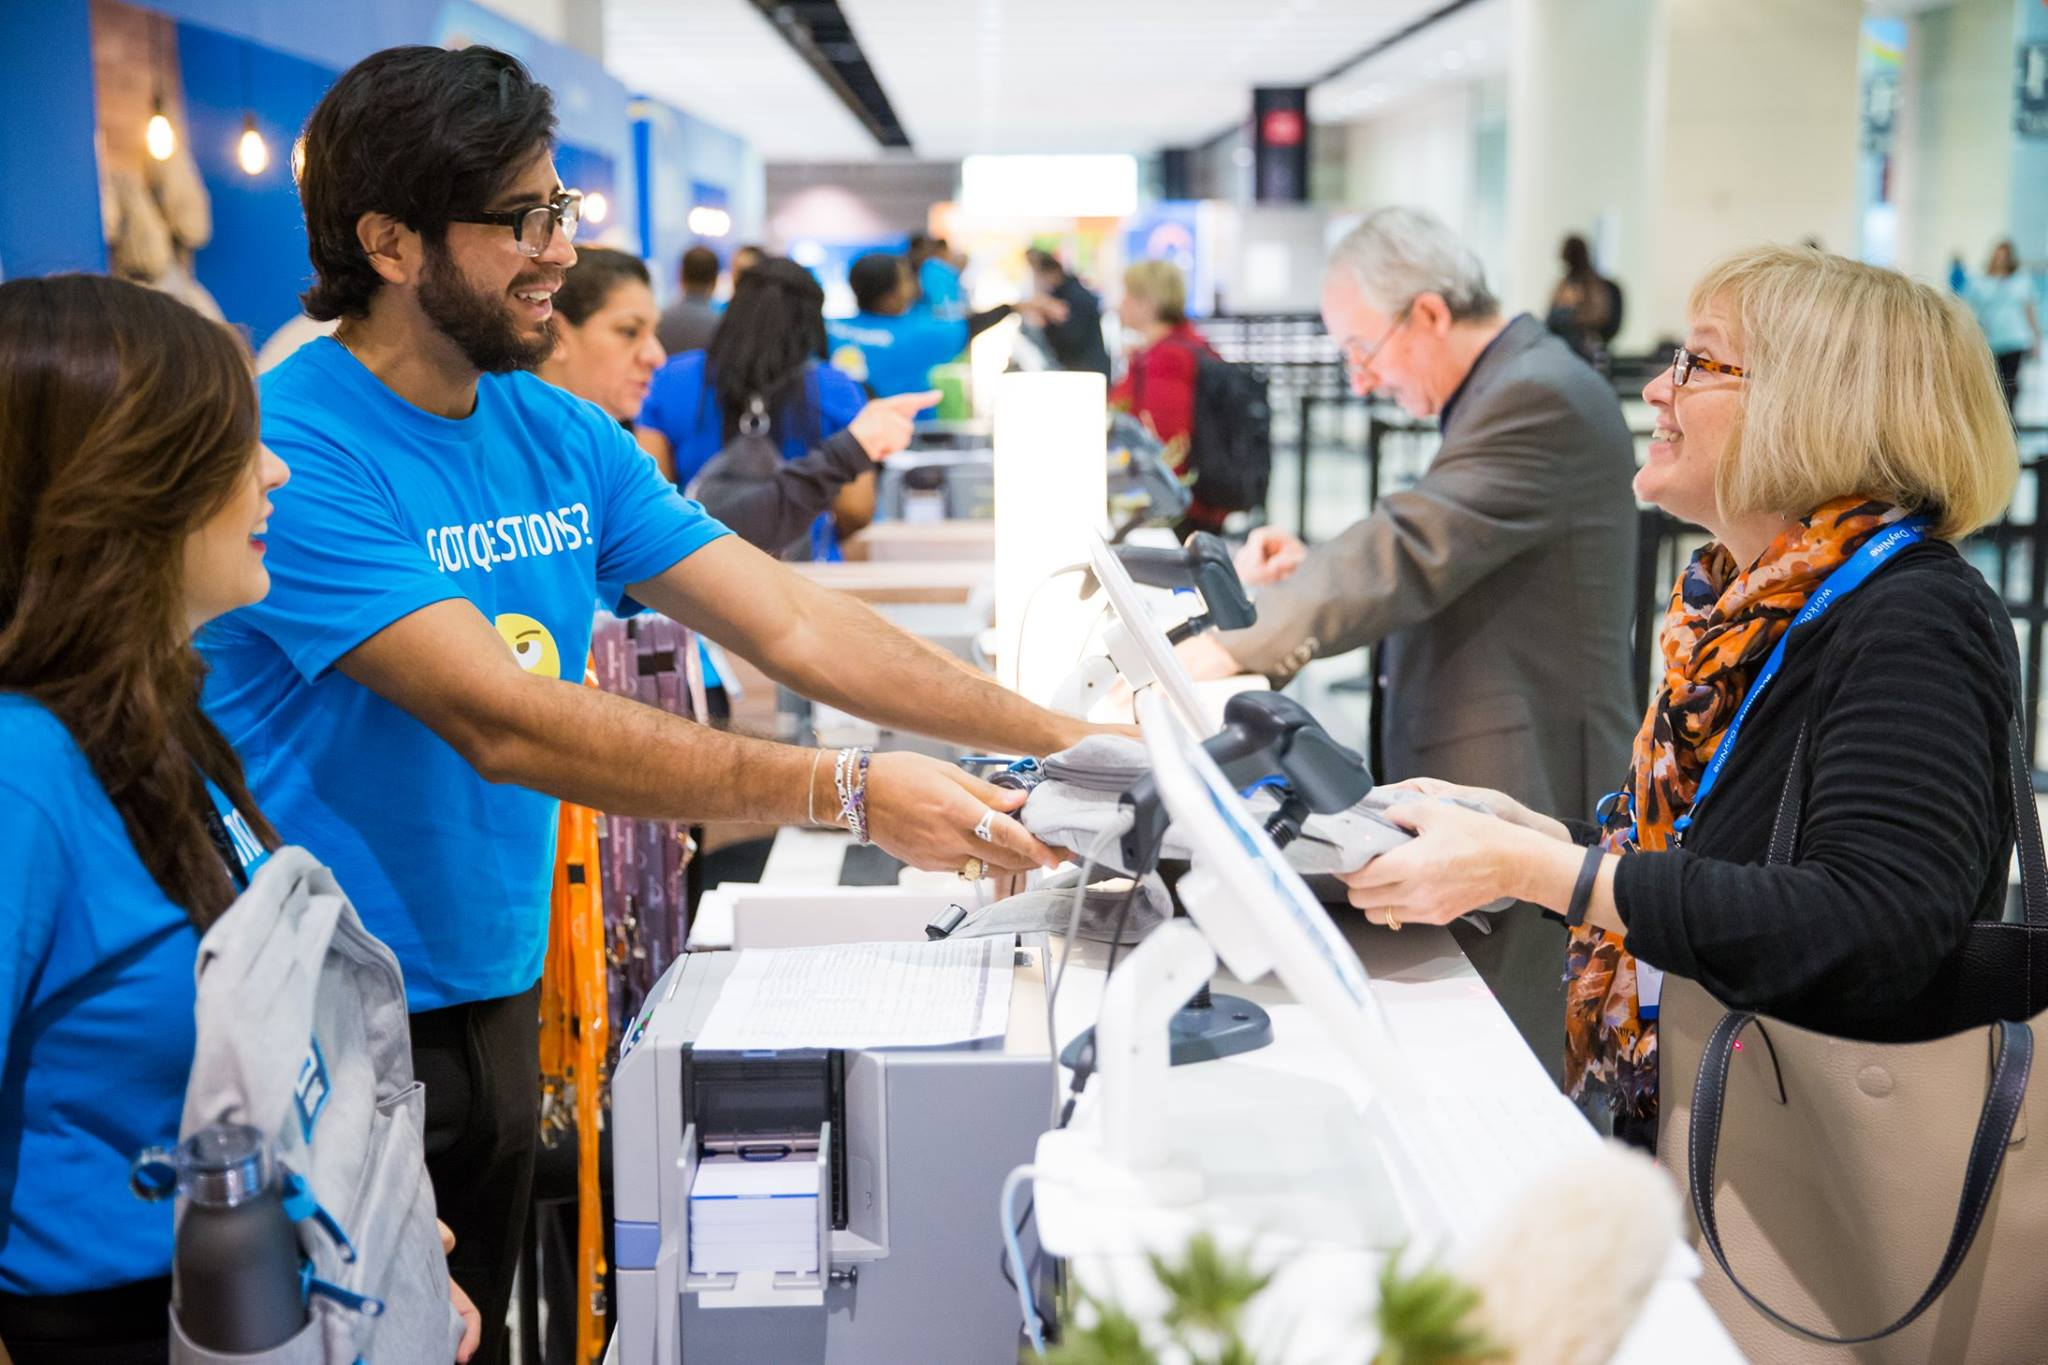 Staff at register station at Workday conference event